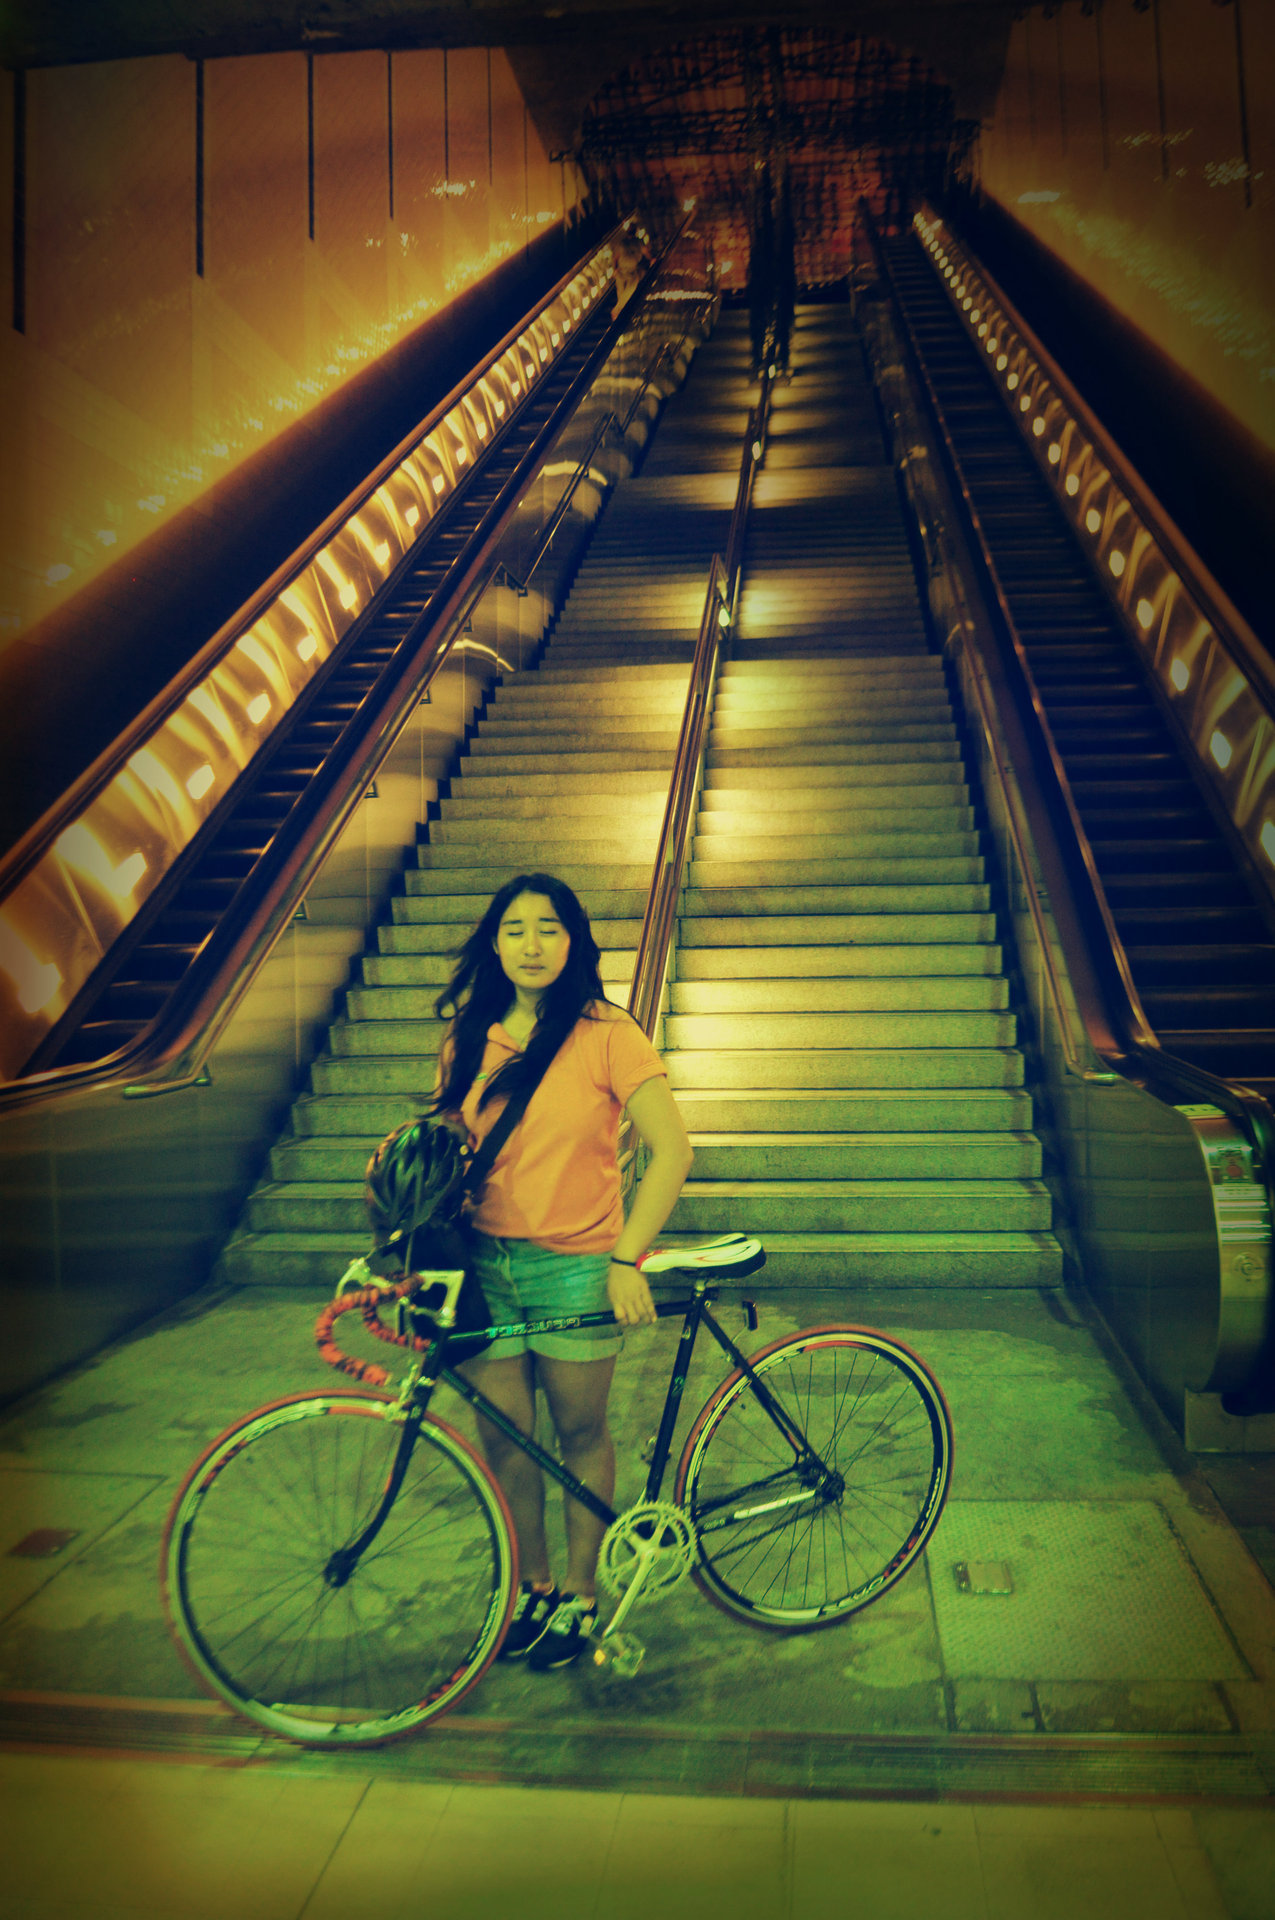 nnaear:  civic center metro station after ciclavia!  i miss my long hair :C